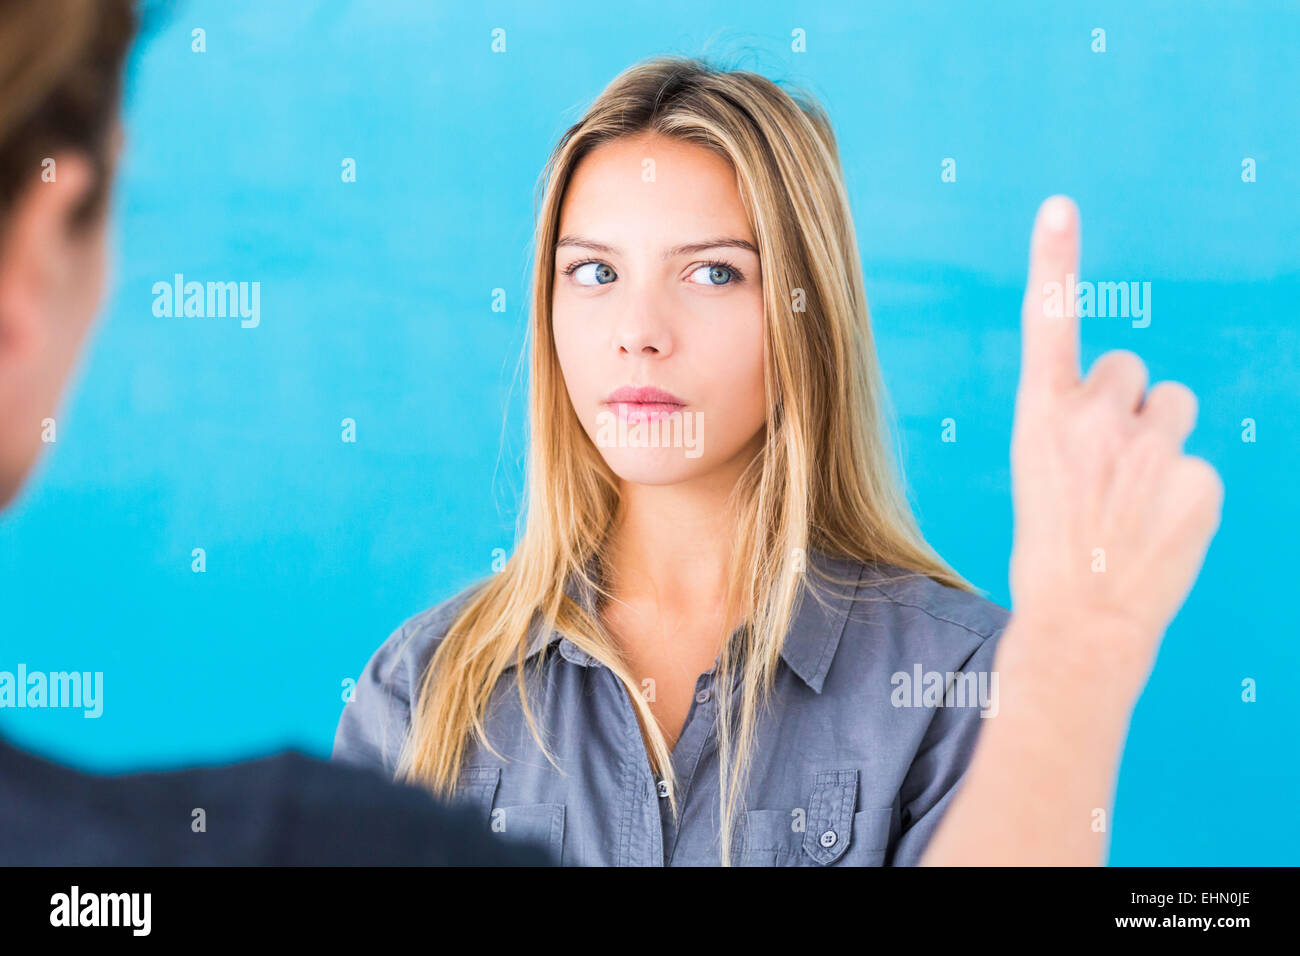 Woman undergoing EMDR (Eye Movement Desensitization and Reprocessing) therapy. This therapy helps people suffering - Stock Image